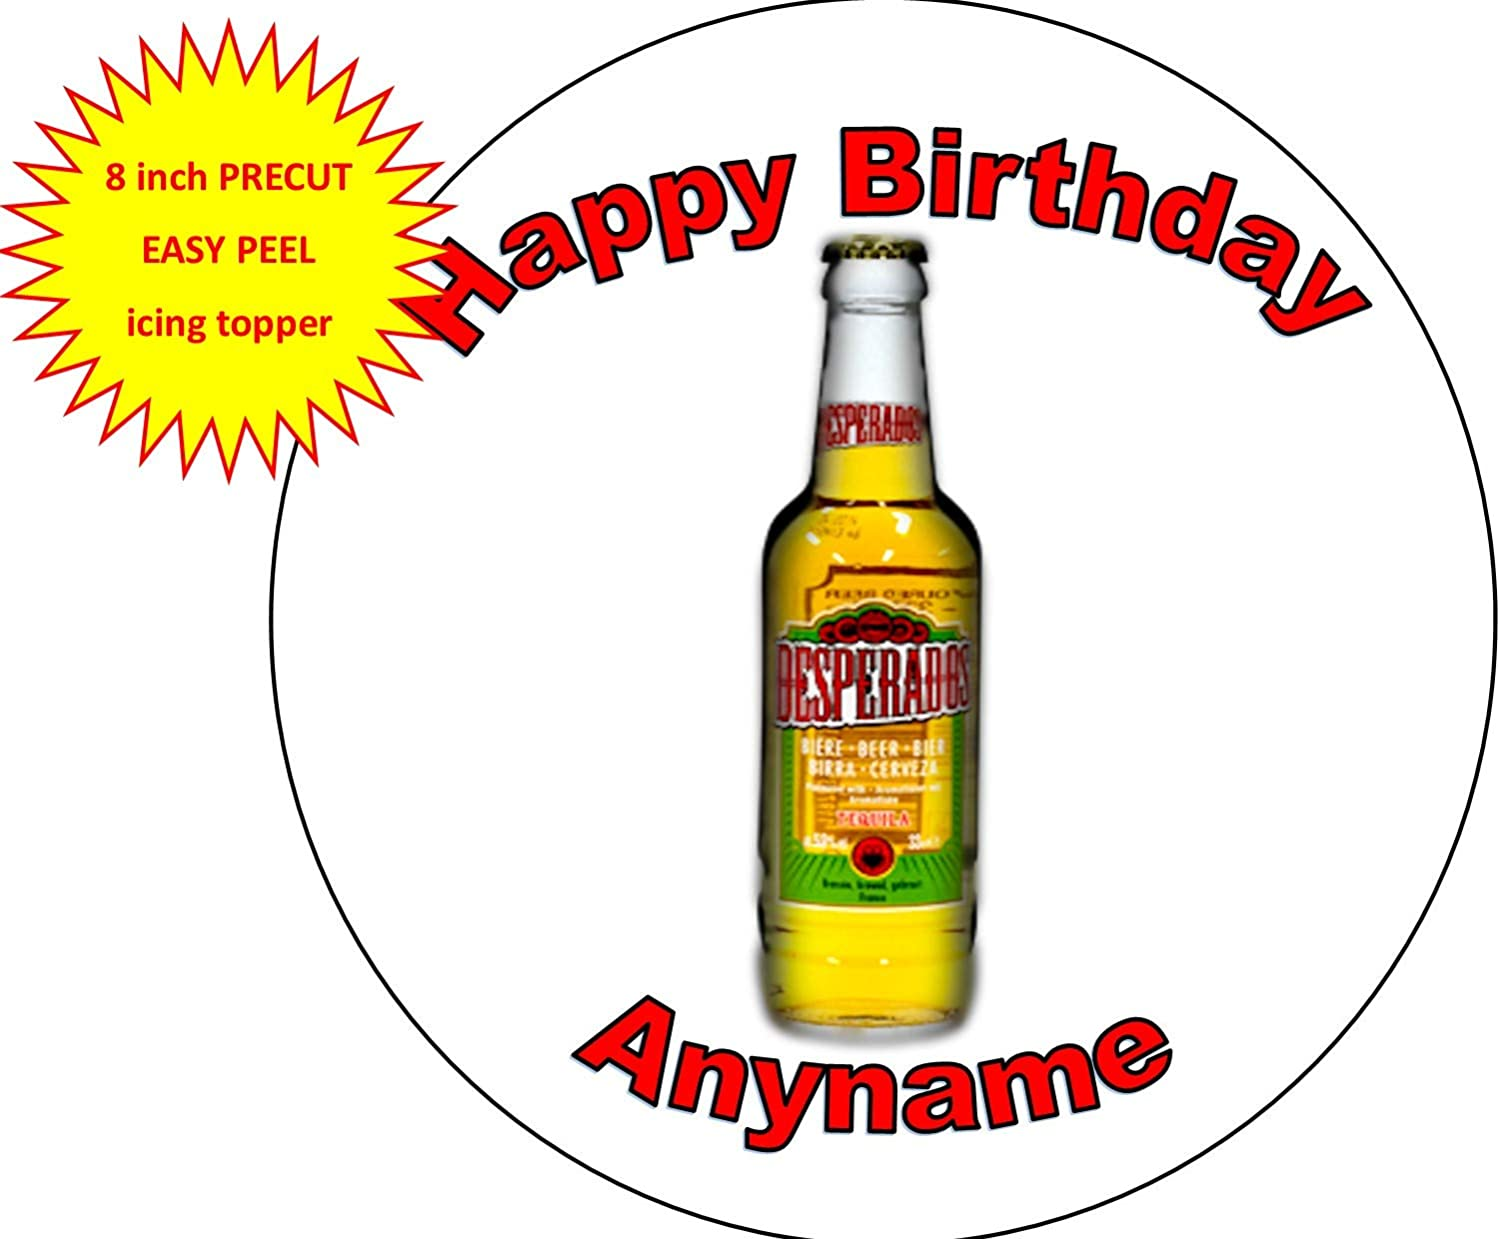 Bottle Desperados Beer Lager Colours Personalised Name Happy Birthday 8 Inch Round Easy Peel Pre Cut Edible Icing Cake Topper Decoration Amazon Co Uk Grocery